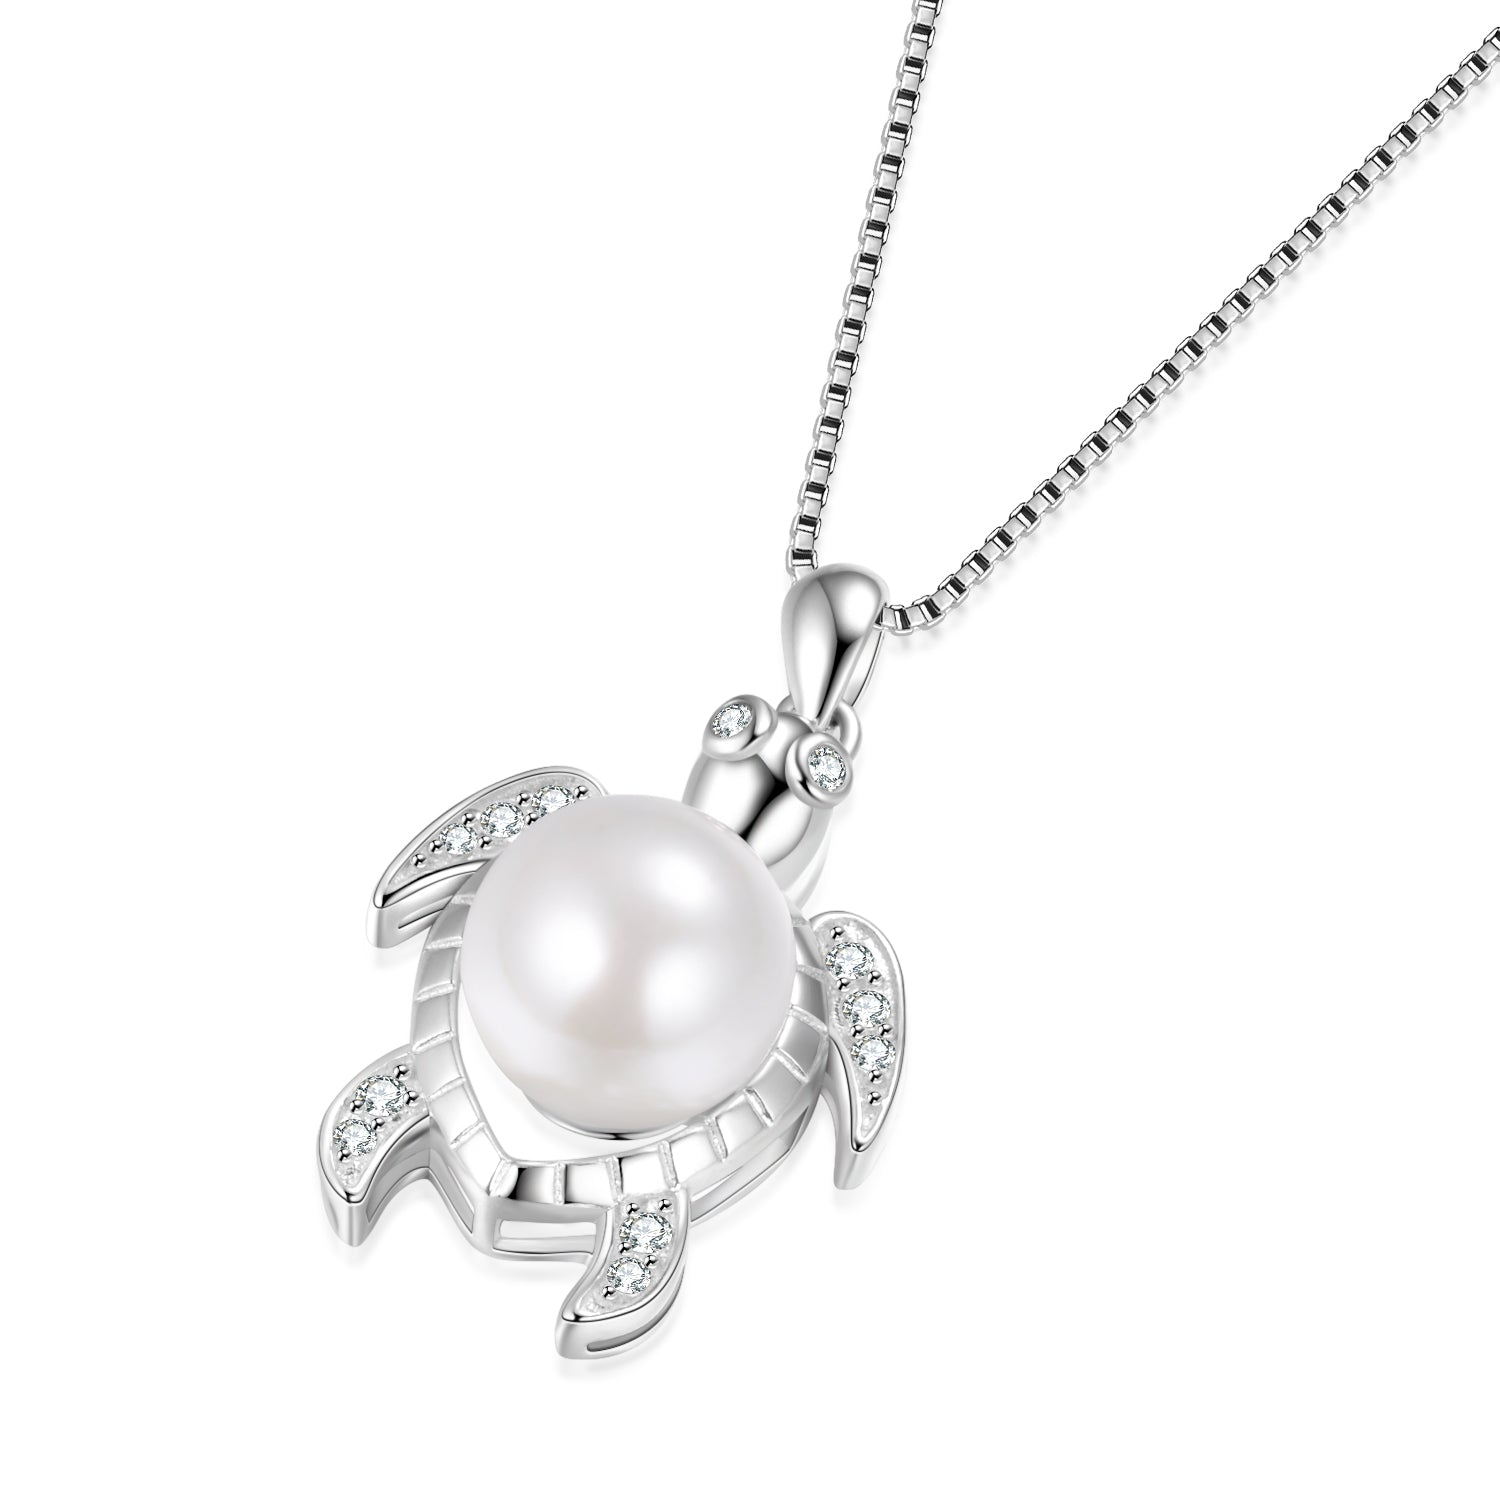 Turtle Necklace Ocean Animal High Quality Cubic Zirconia Silver Jewelry